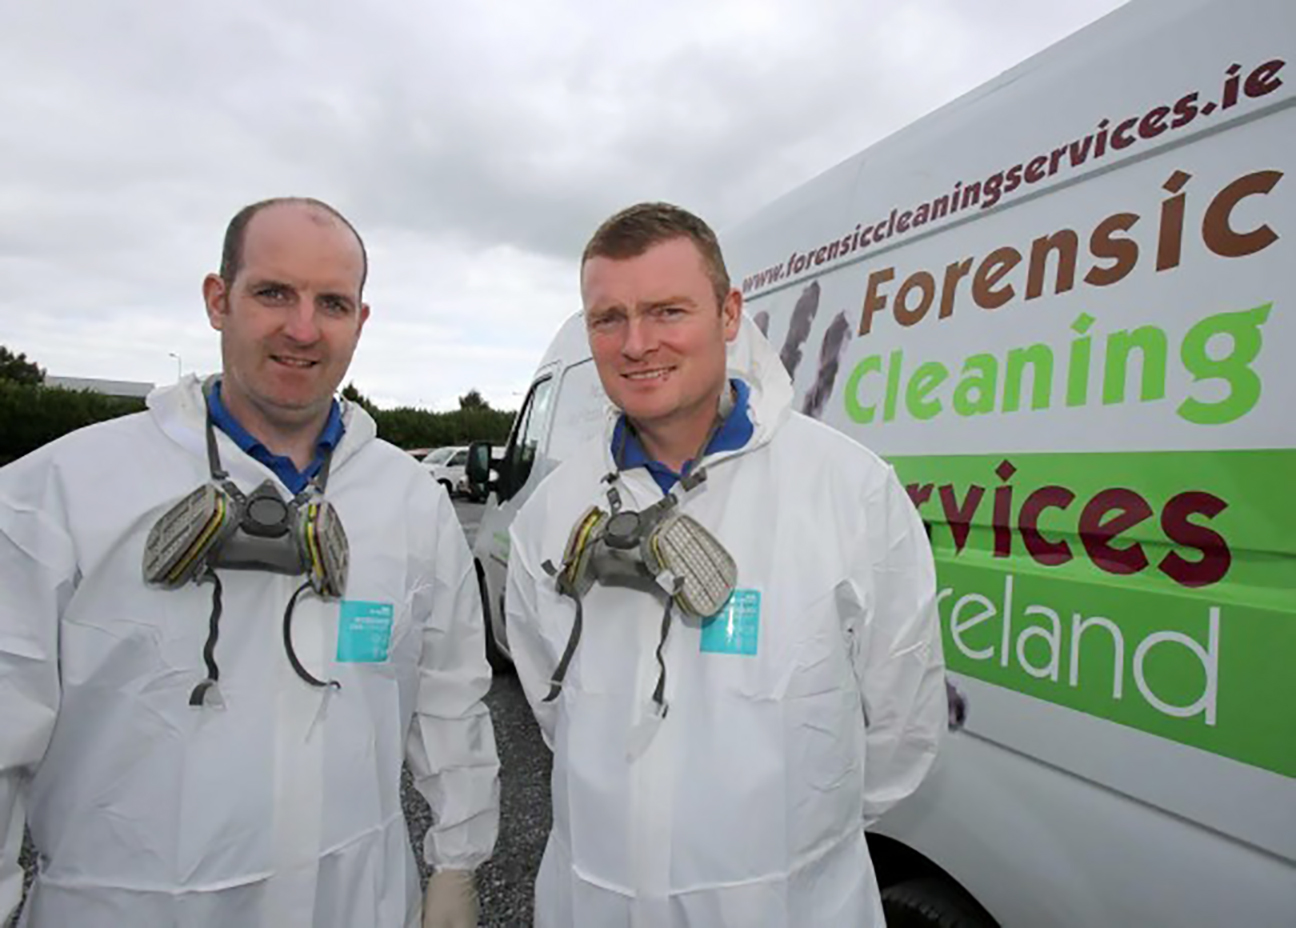 Micheal Holahan and Brendan Reilly | Forensic Cleaning Services Ireland